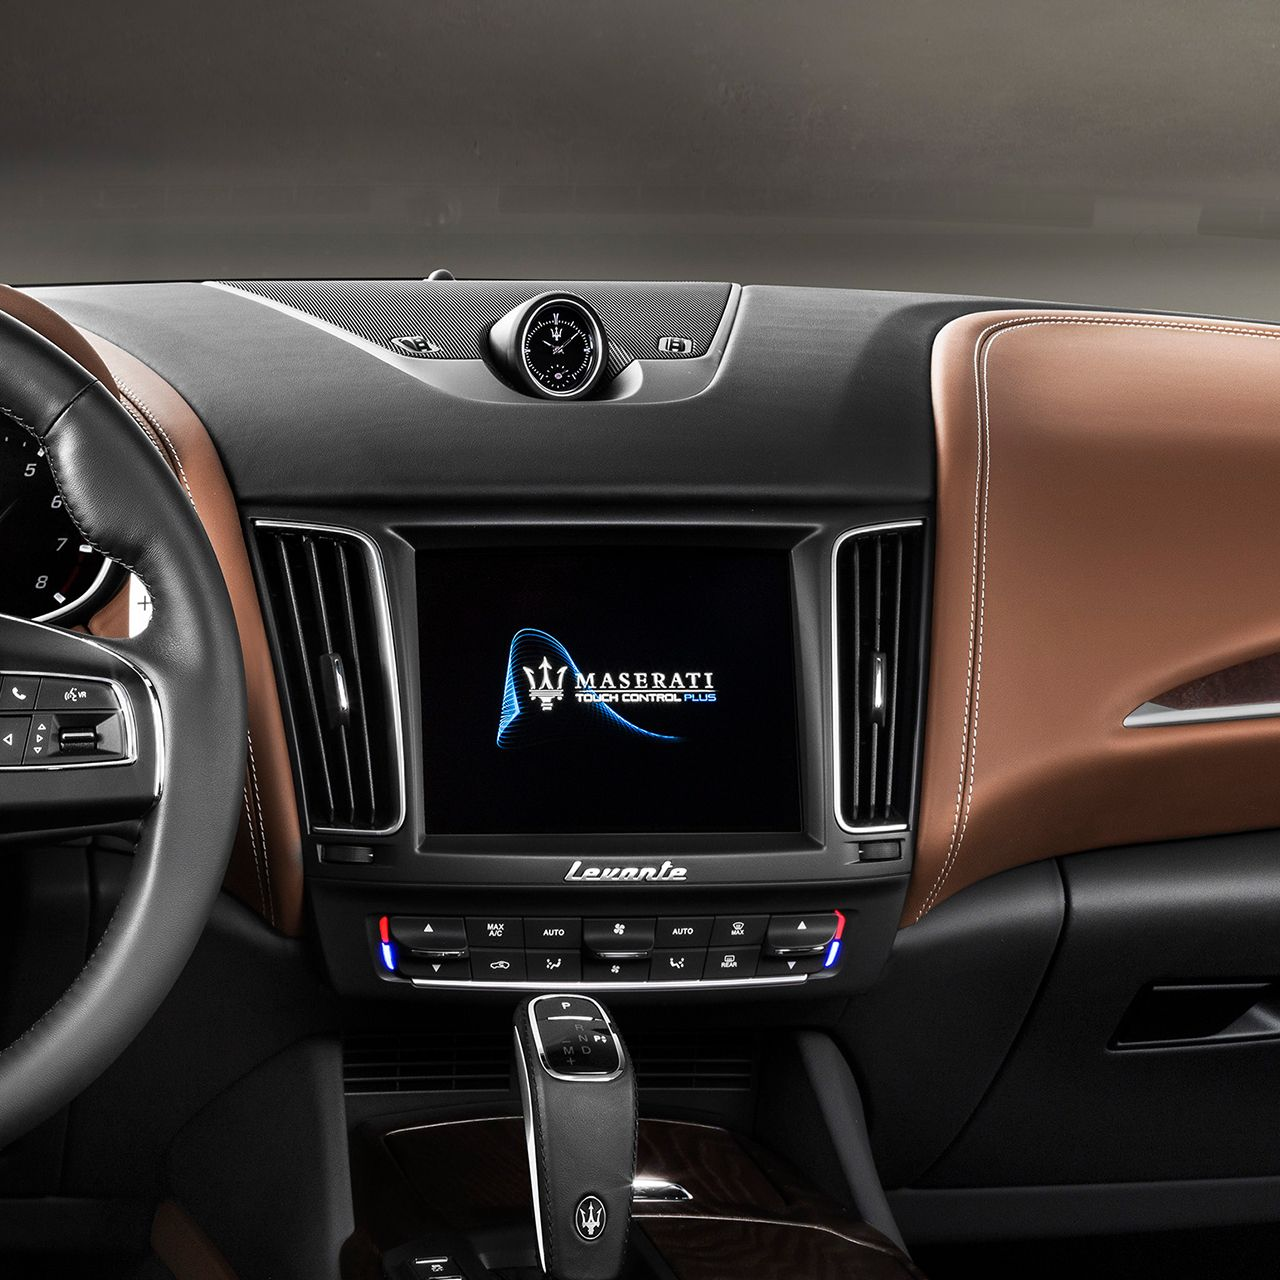 Maserati Levante Innenausstattung - Display - Infotainment und App-Connectivity